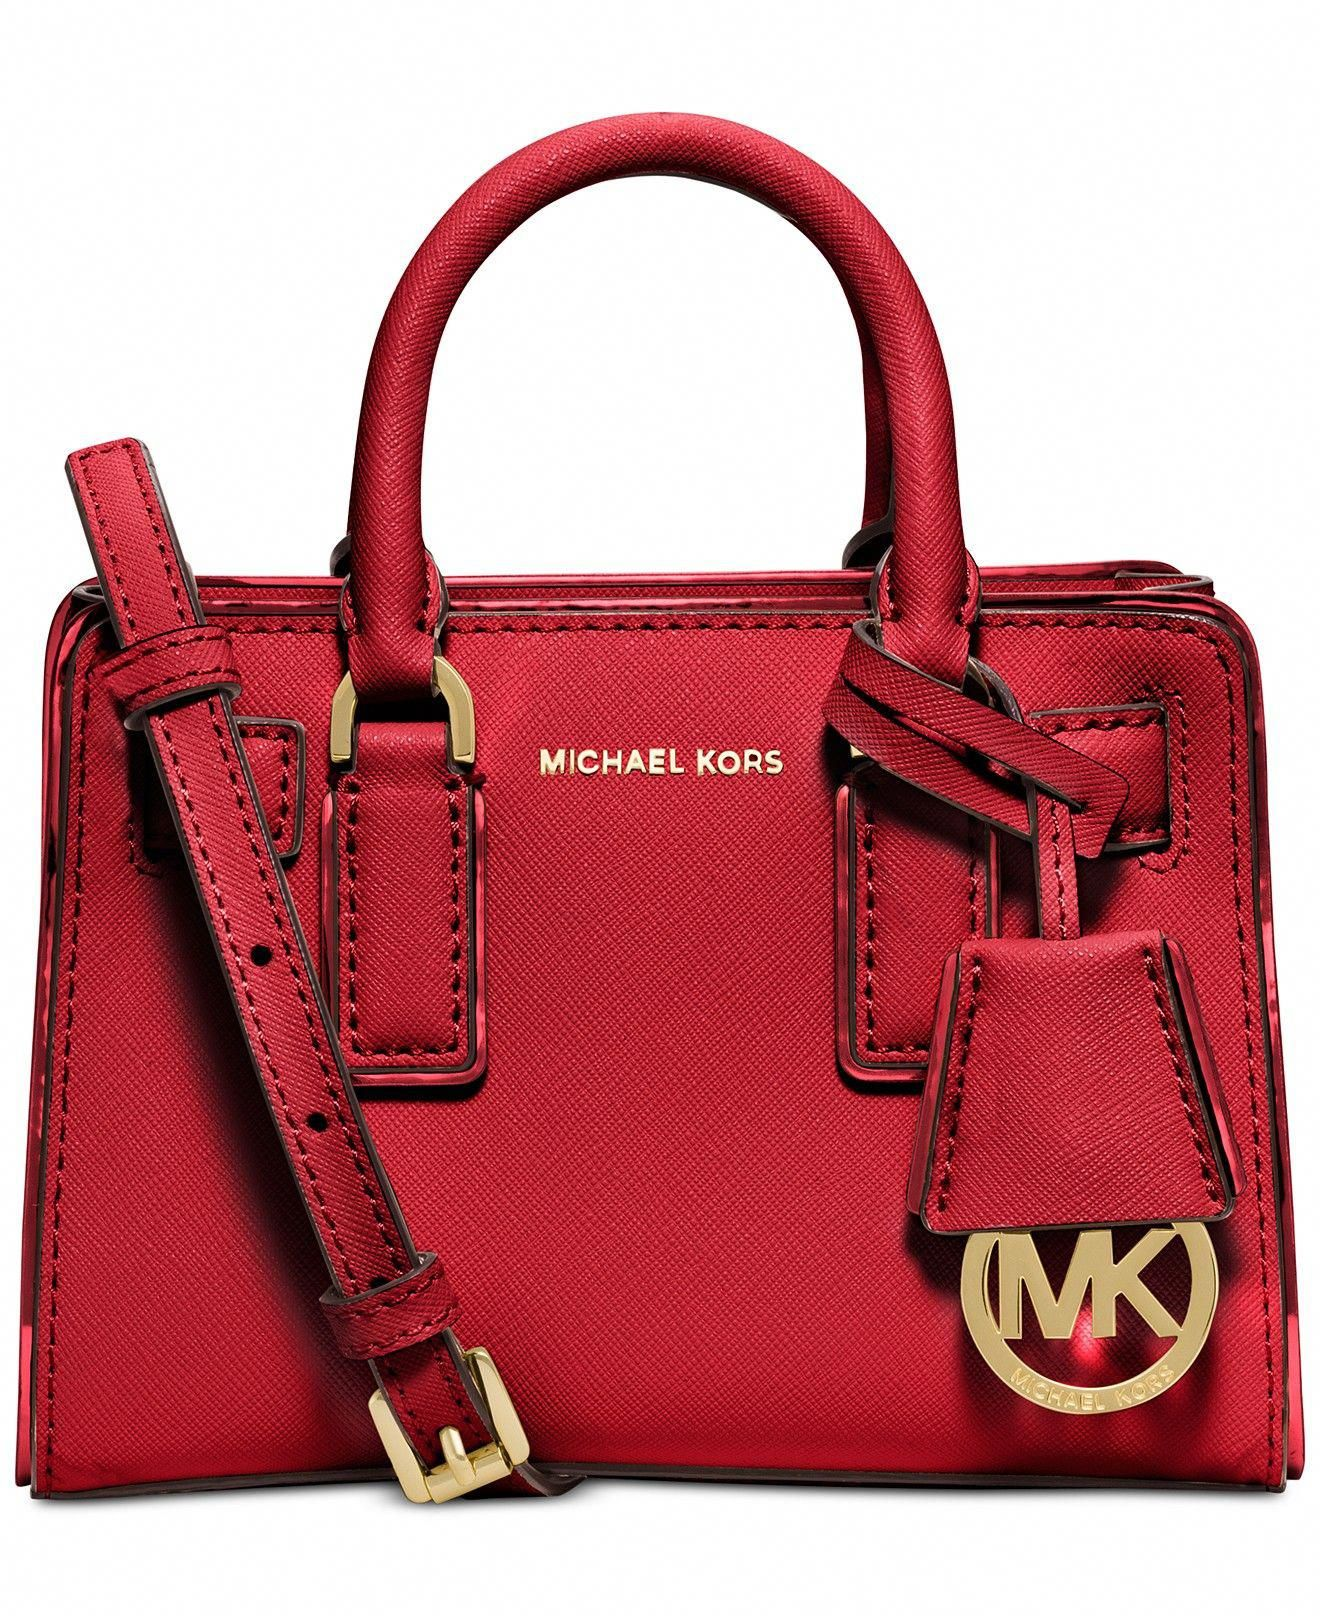 ba6103beade40c handbags michael kors red #Handbagsmichaelkors | Handbags michael ...